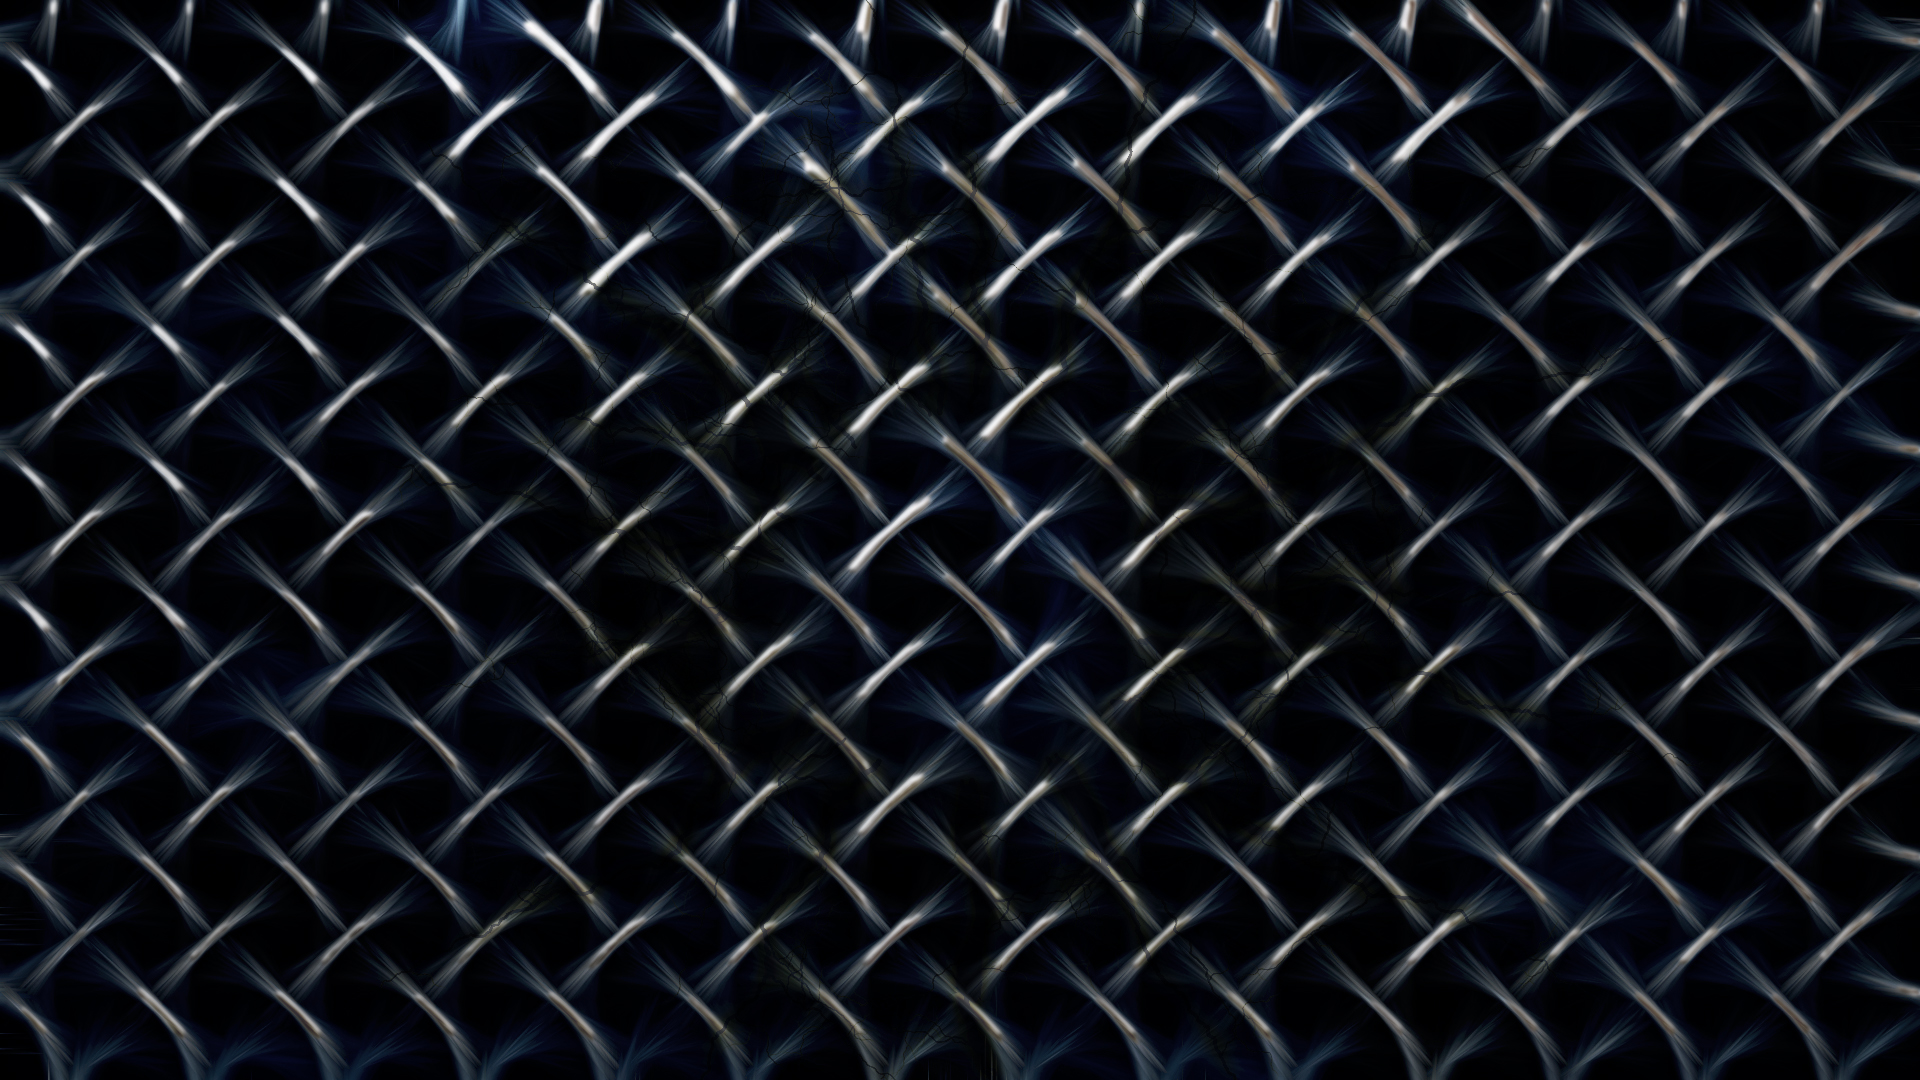 white carbon fiber iphone wallpaper